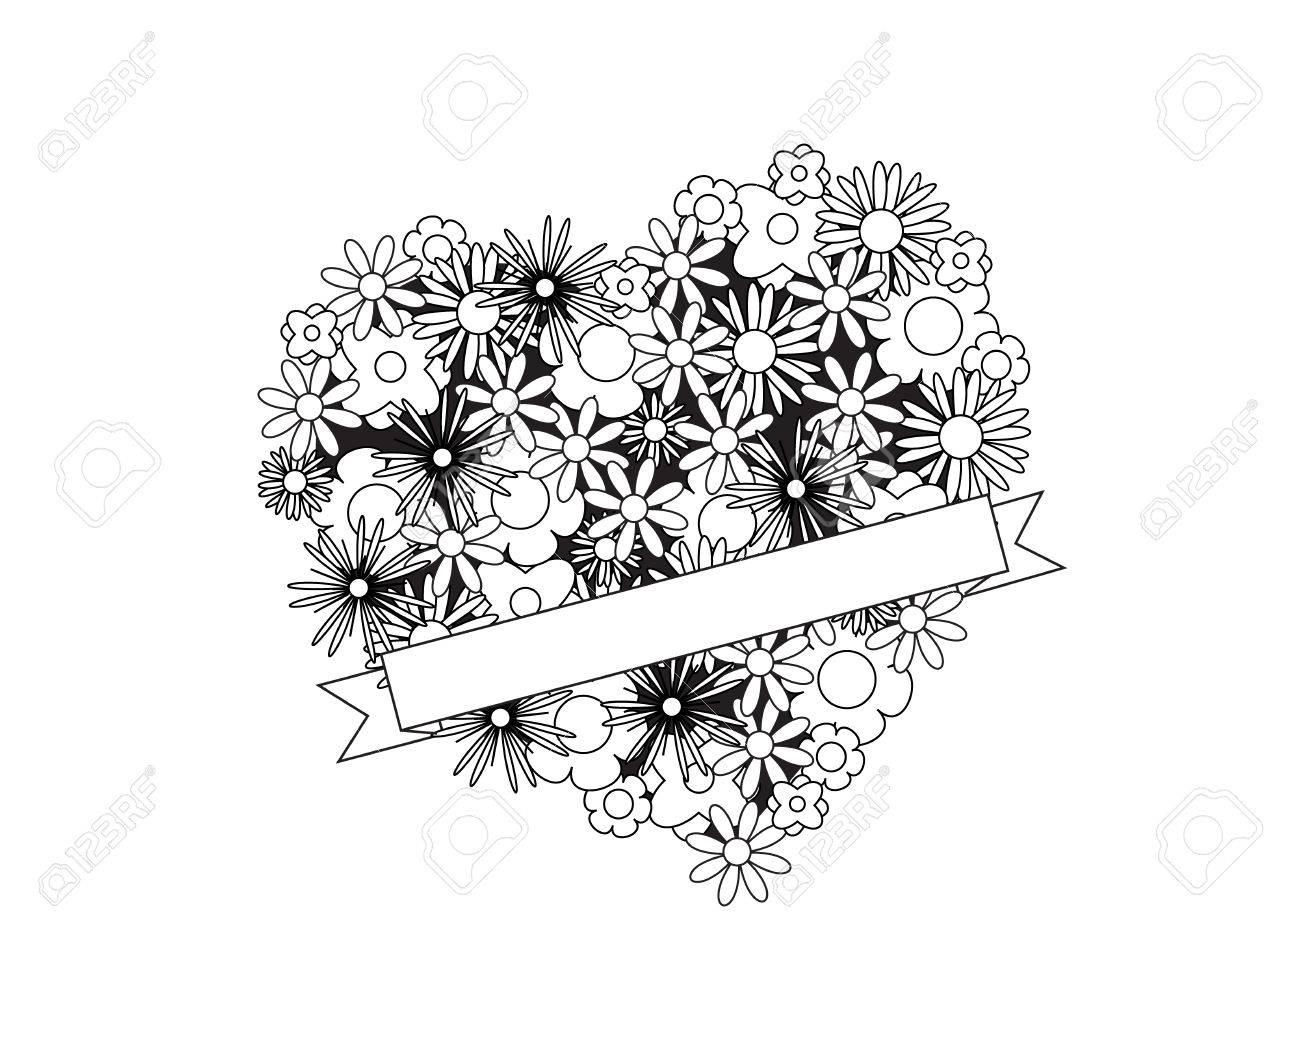 coloring page for adult od kids simple floral heart with ribbon place for your text